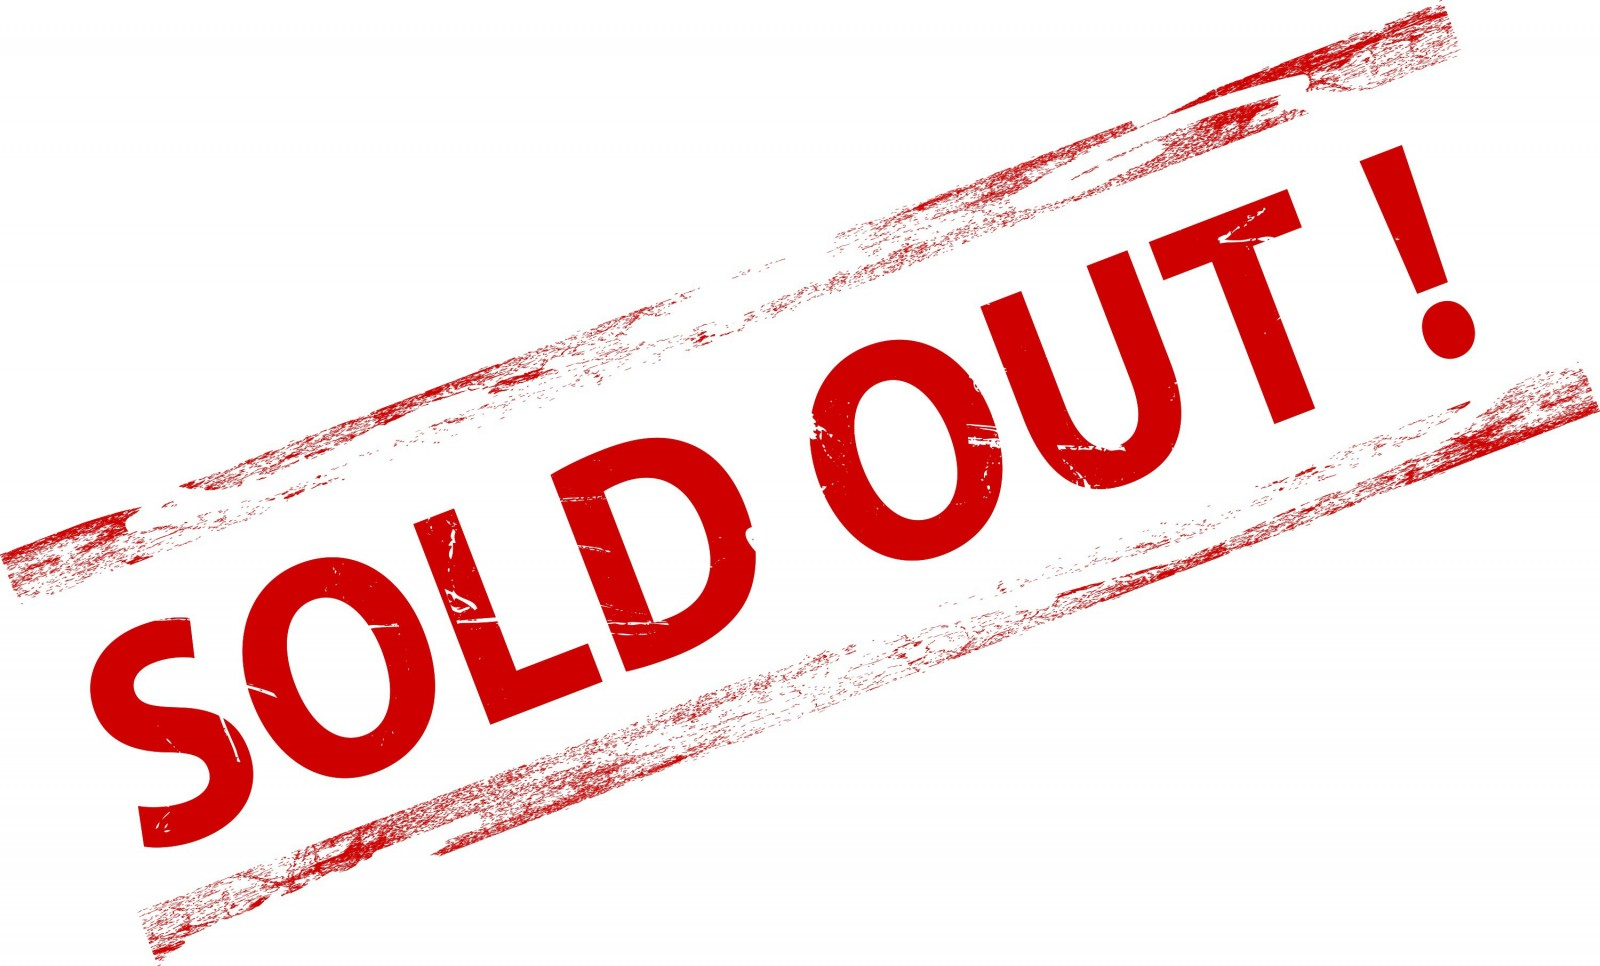 Sold Out Png image #19945